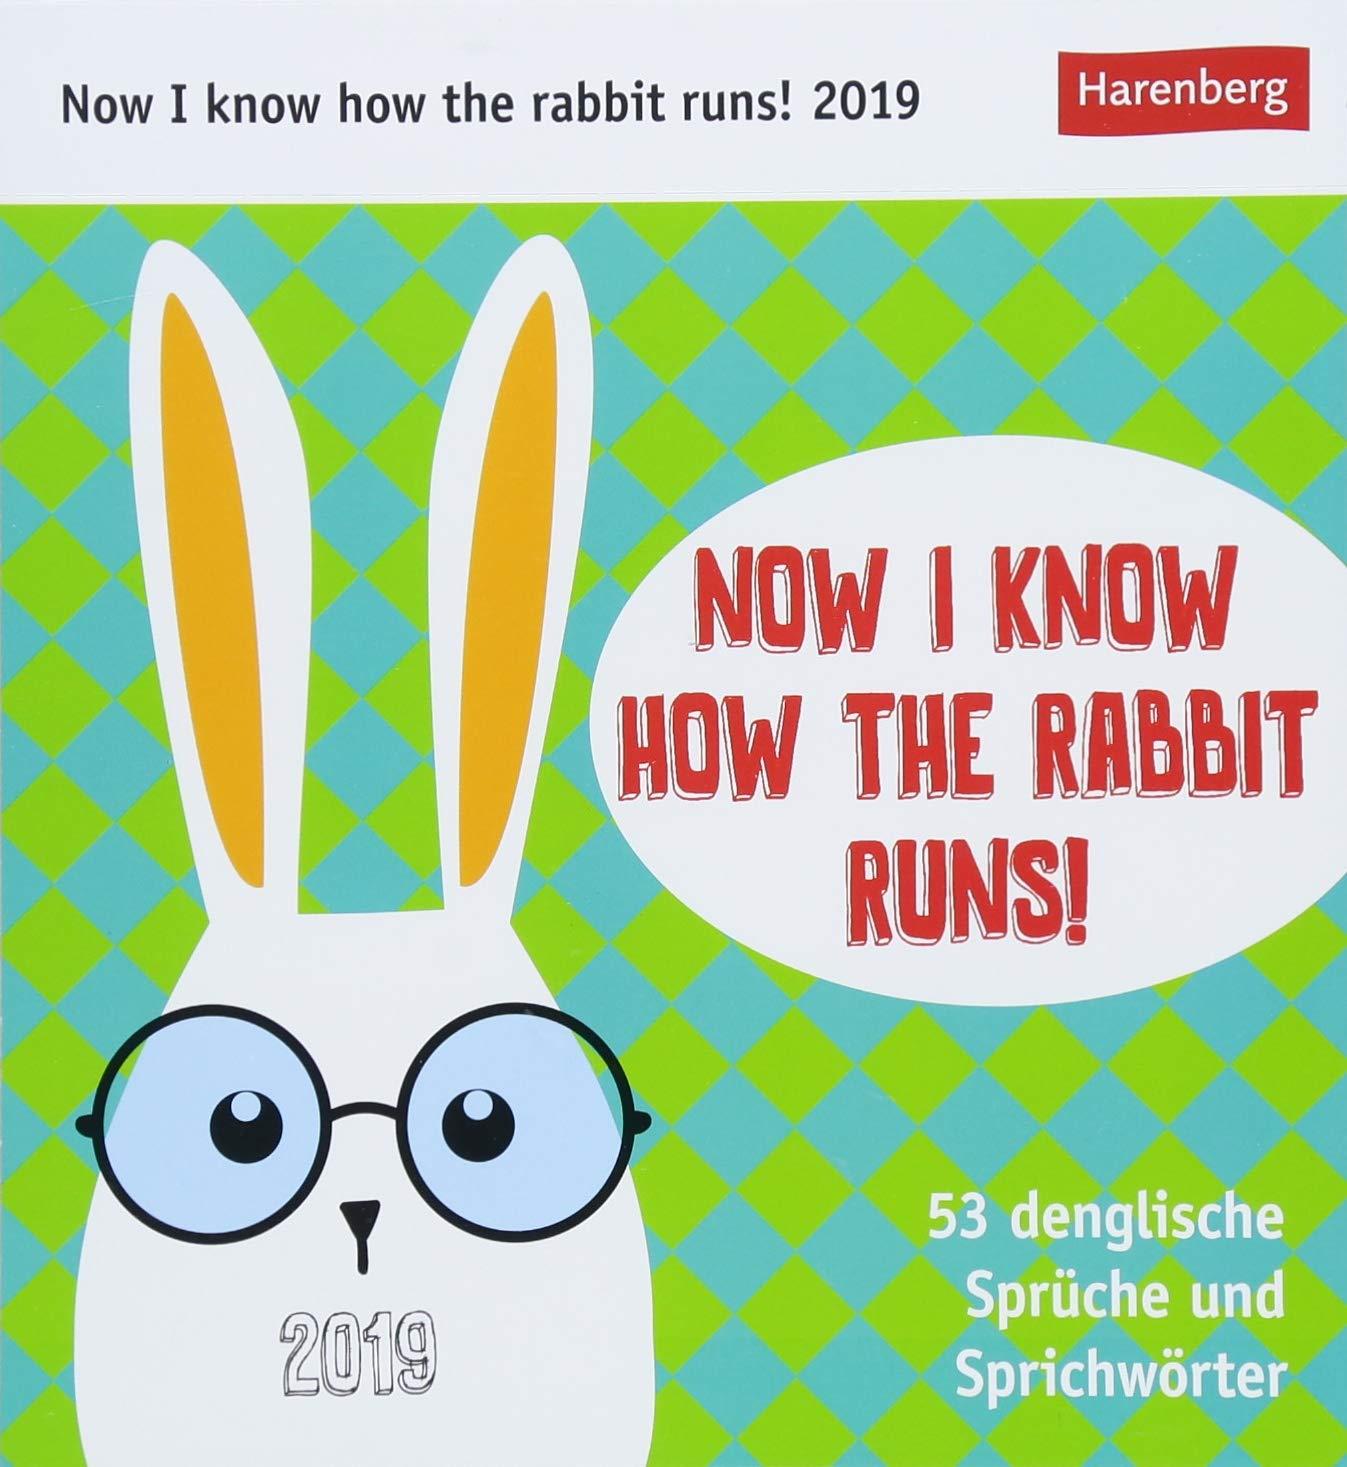 Now I know how the rabbit runs! - Kalender 2019: 53 denglische Sprüche und Sprichwörter